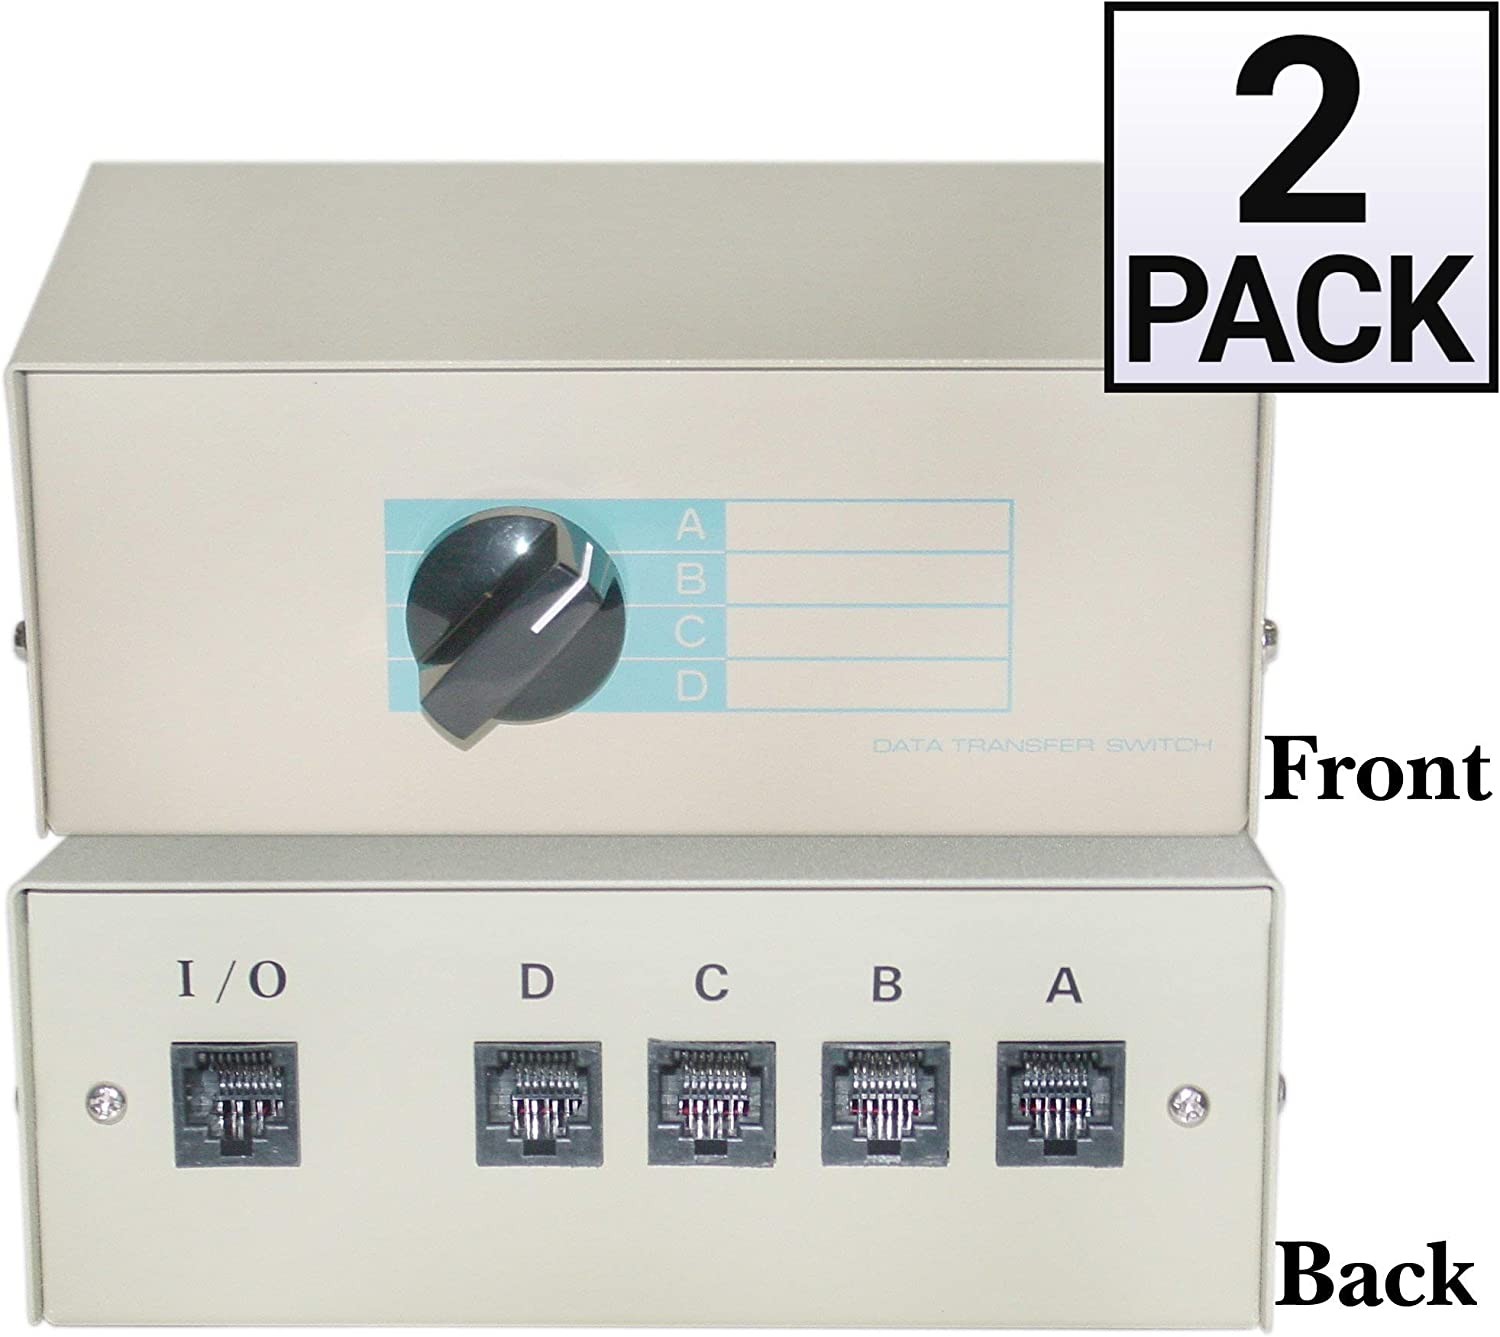 RJ45 Female GOWOS 2 Pack ABCD 4 Way Switch Box